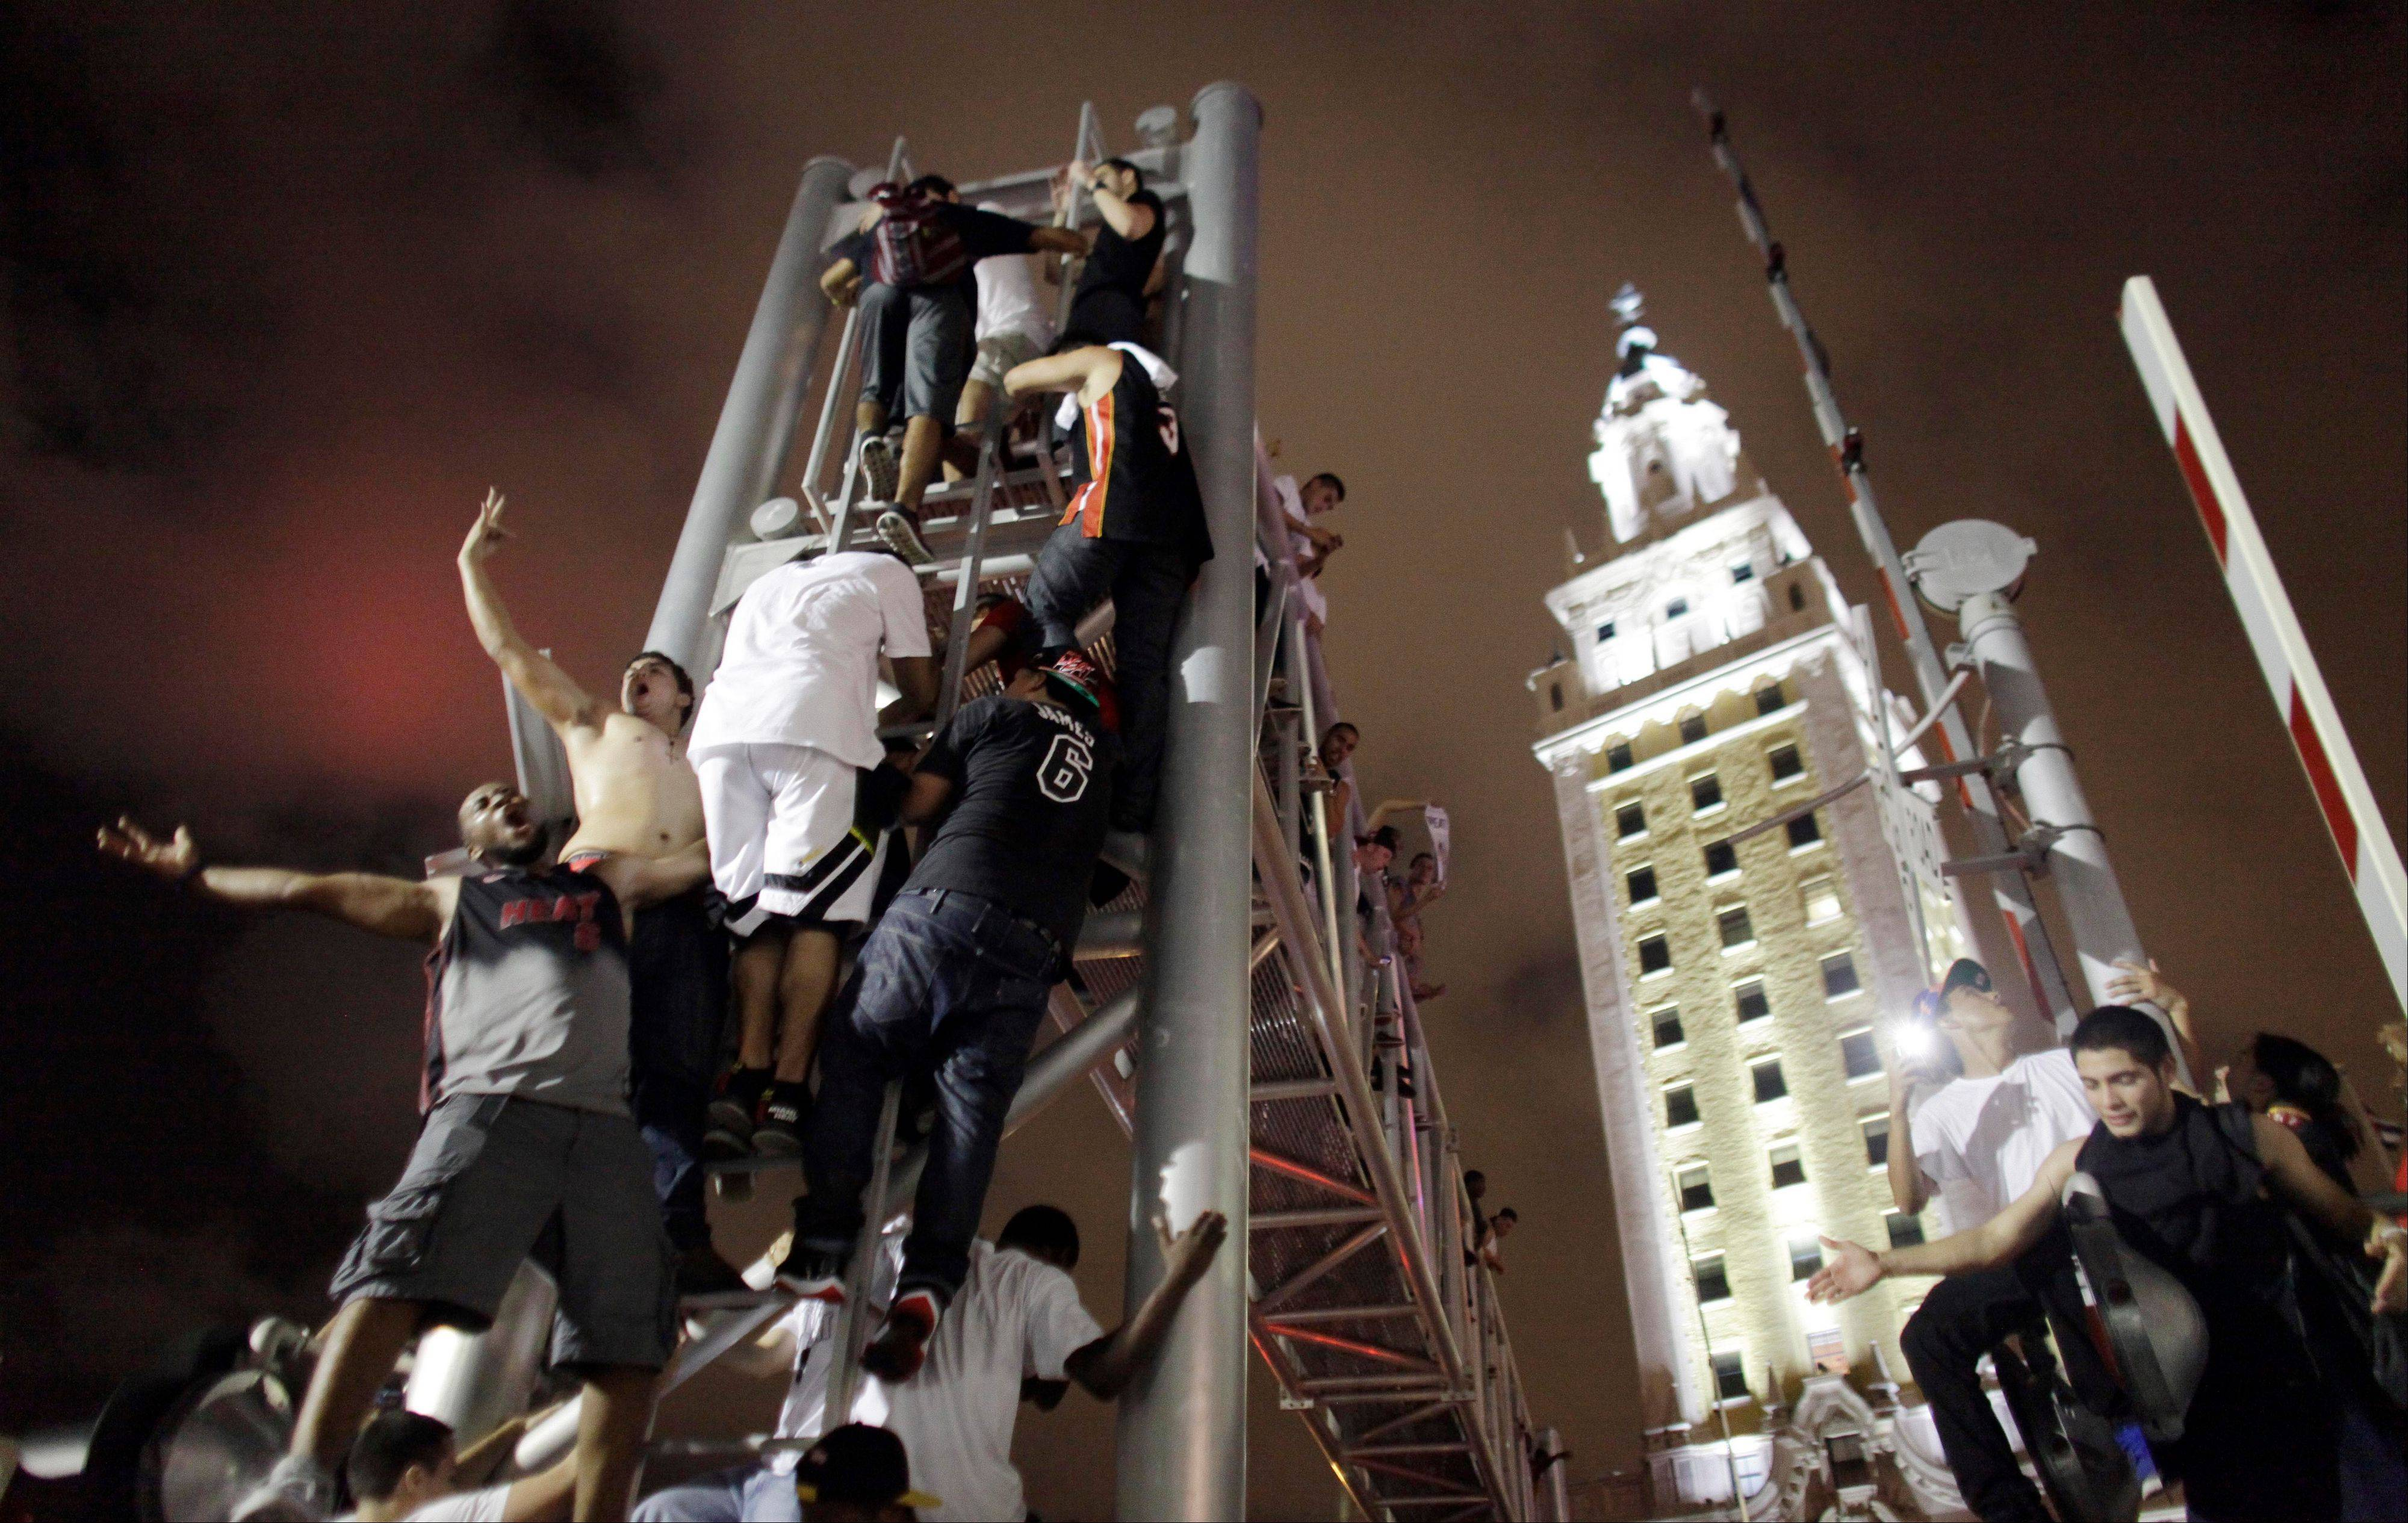 Miami celebrates Heat victory, Spurs fans somber